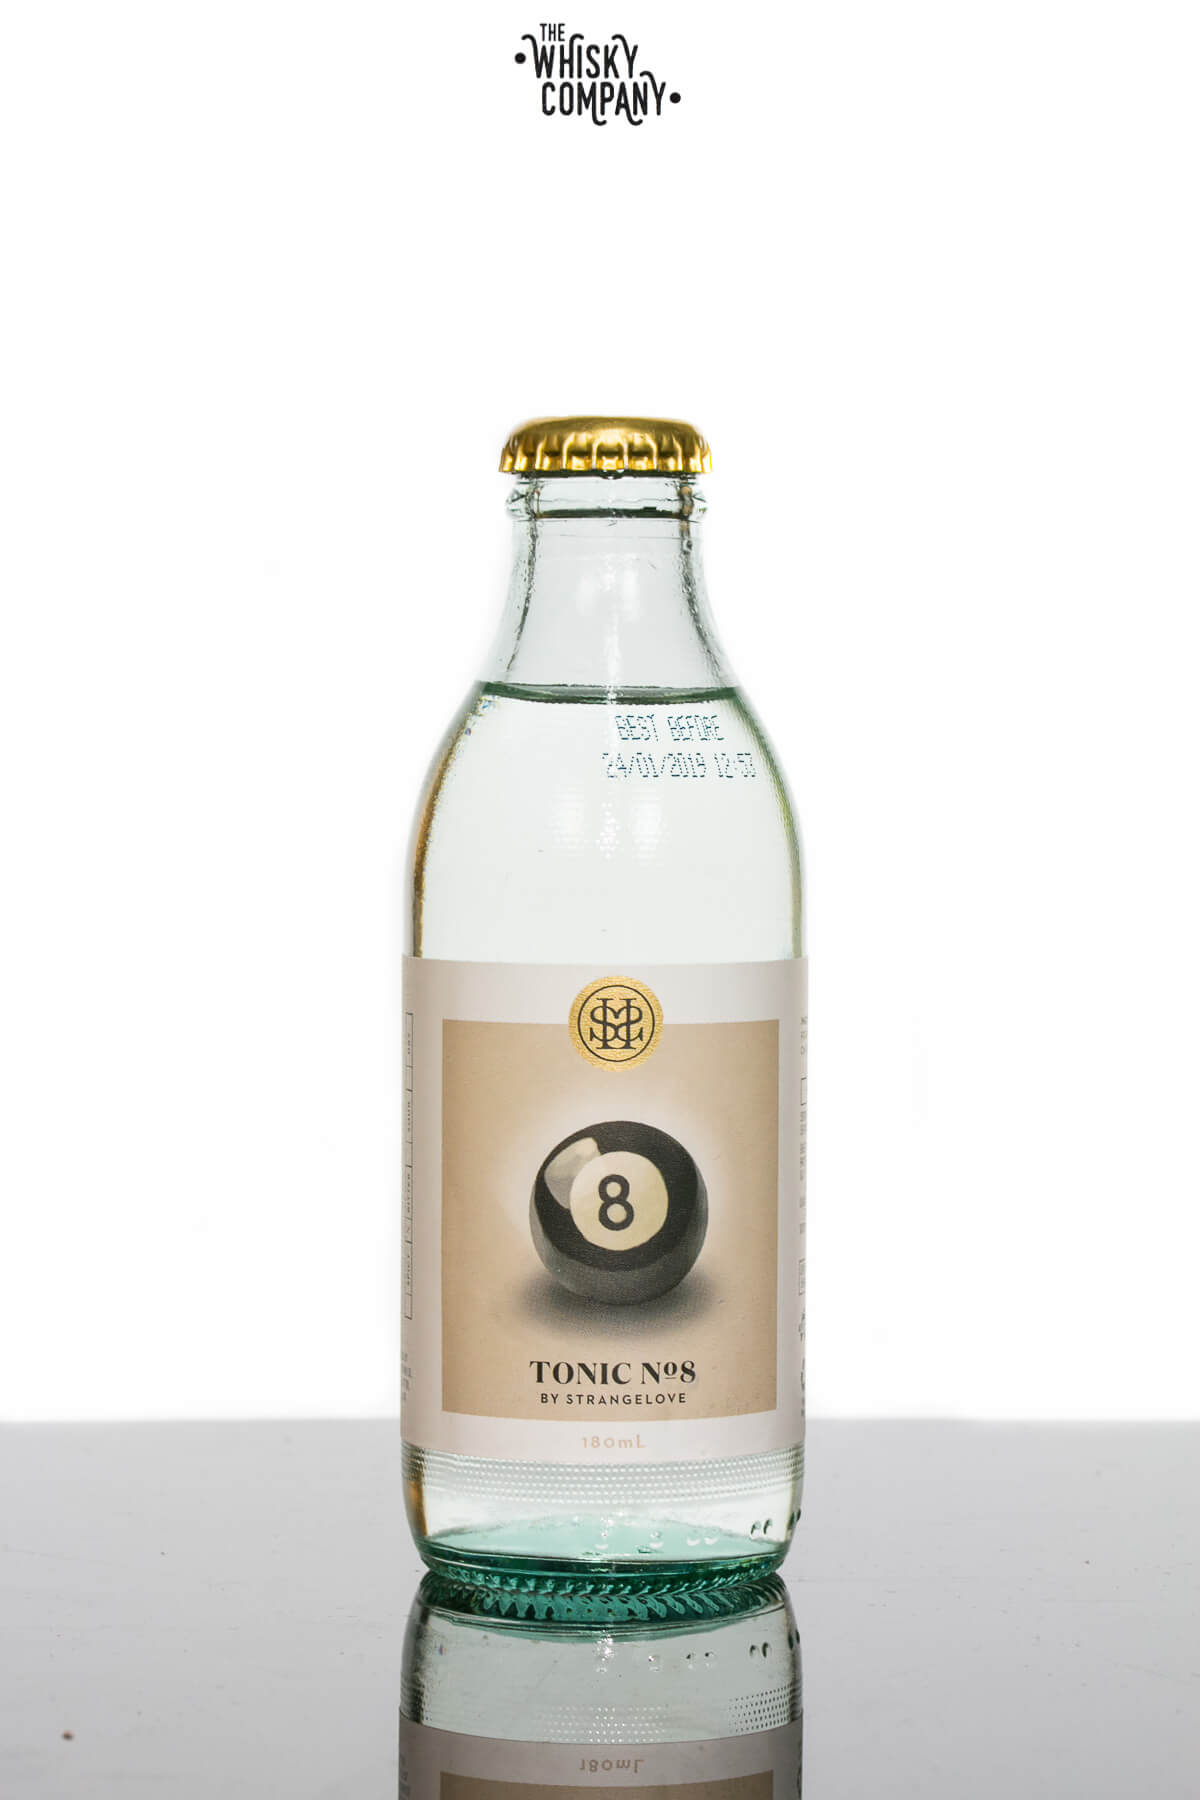 StrangeLove Tonic No.8 (180ml)